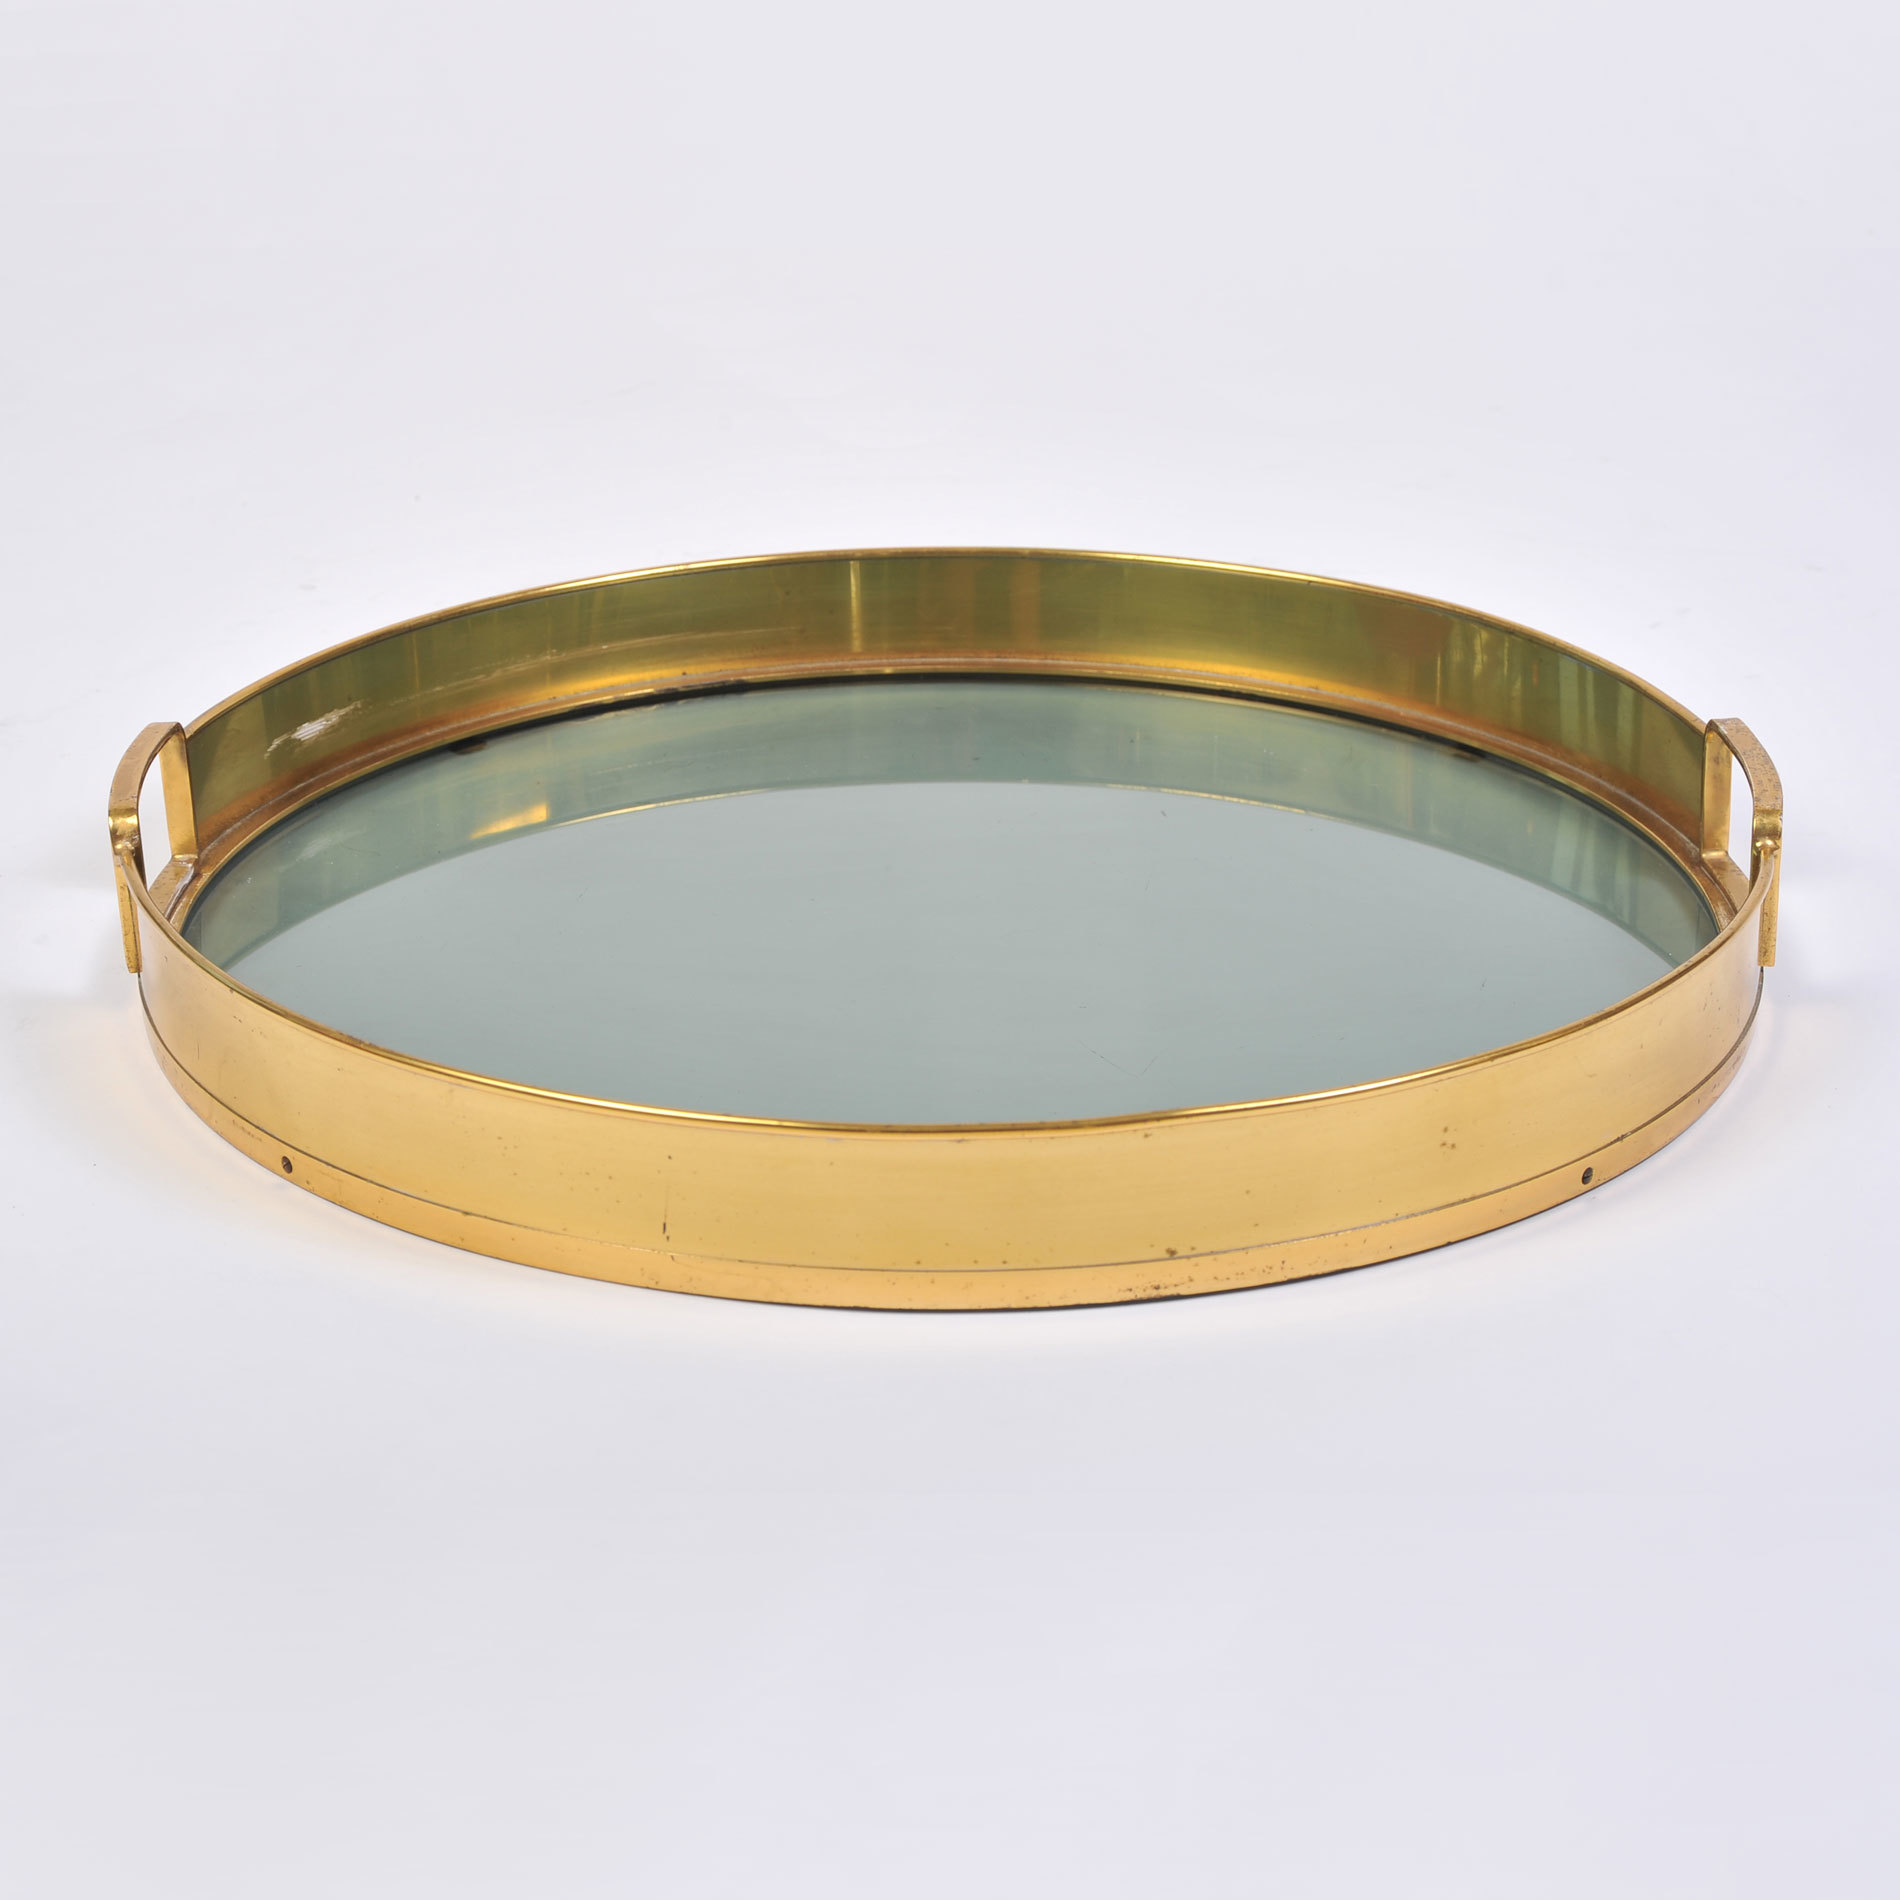 The image for Circular Brass Tray 01